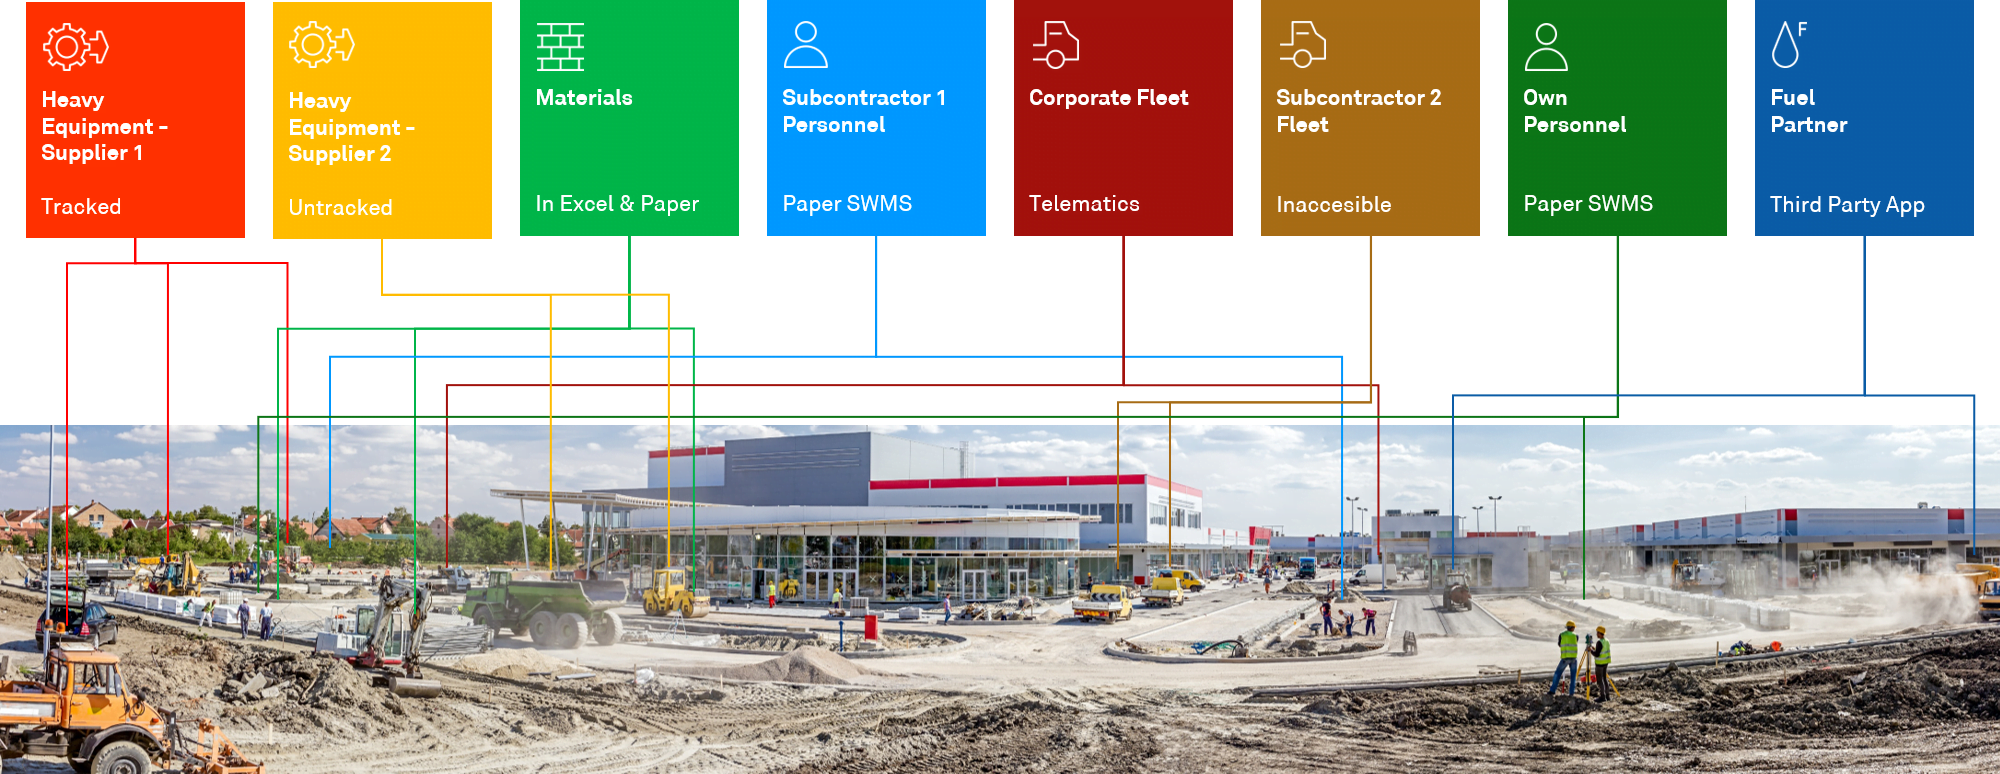 Data feeds of a construction site